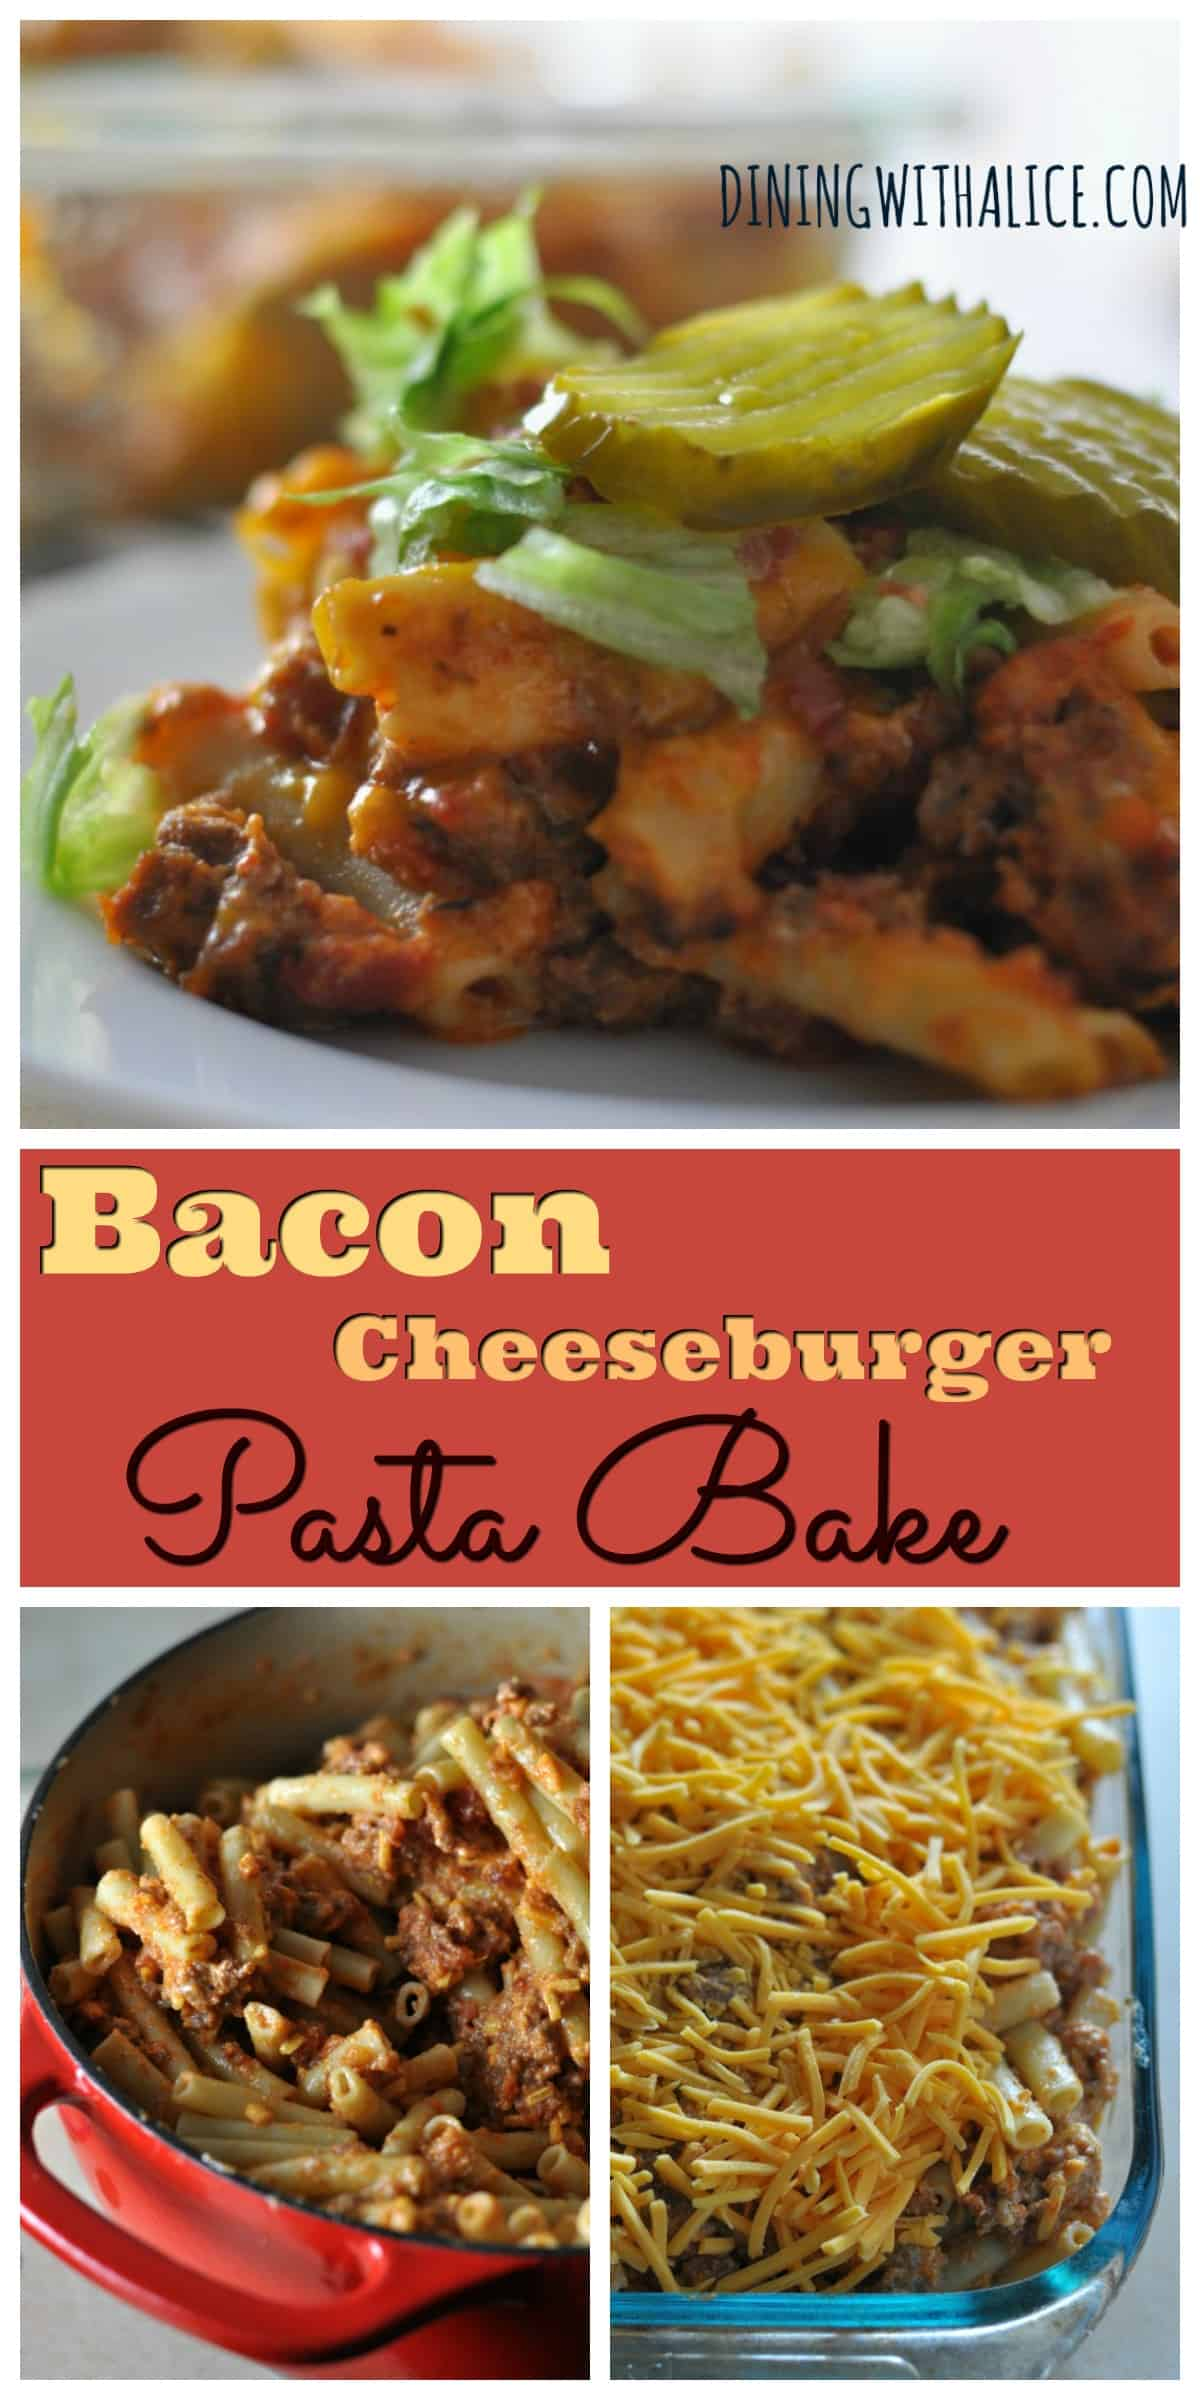 This Bacon Cheeseburger Pasta Bake recipe is an easy and cheesy casserole made with ground beef that is kid-friendly and a perfect family weeknight meal with leftovers.  http://diningwithalice.com/weeknight-meals/bacon-cheeseburger-pasta-bake/